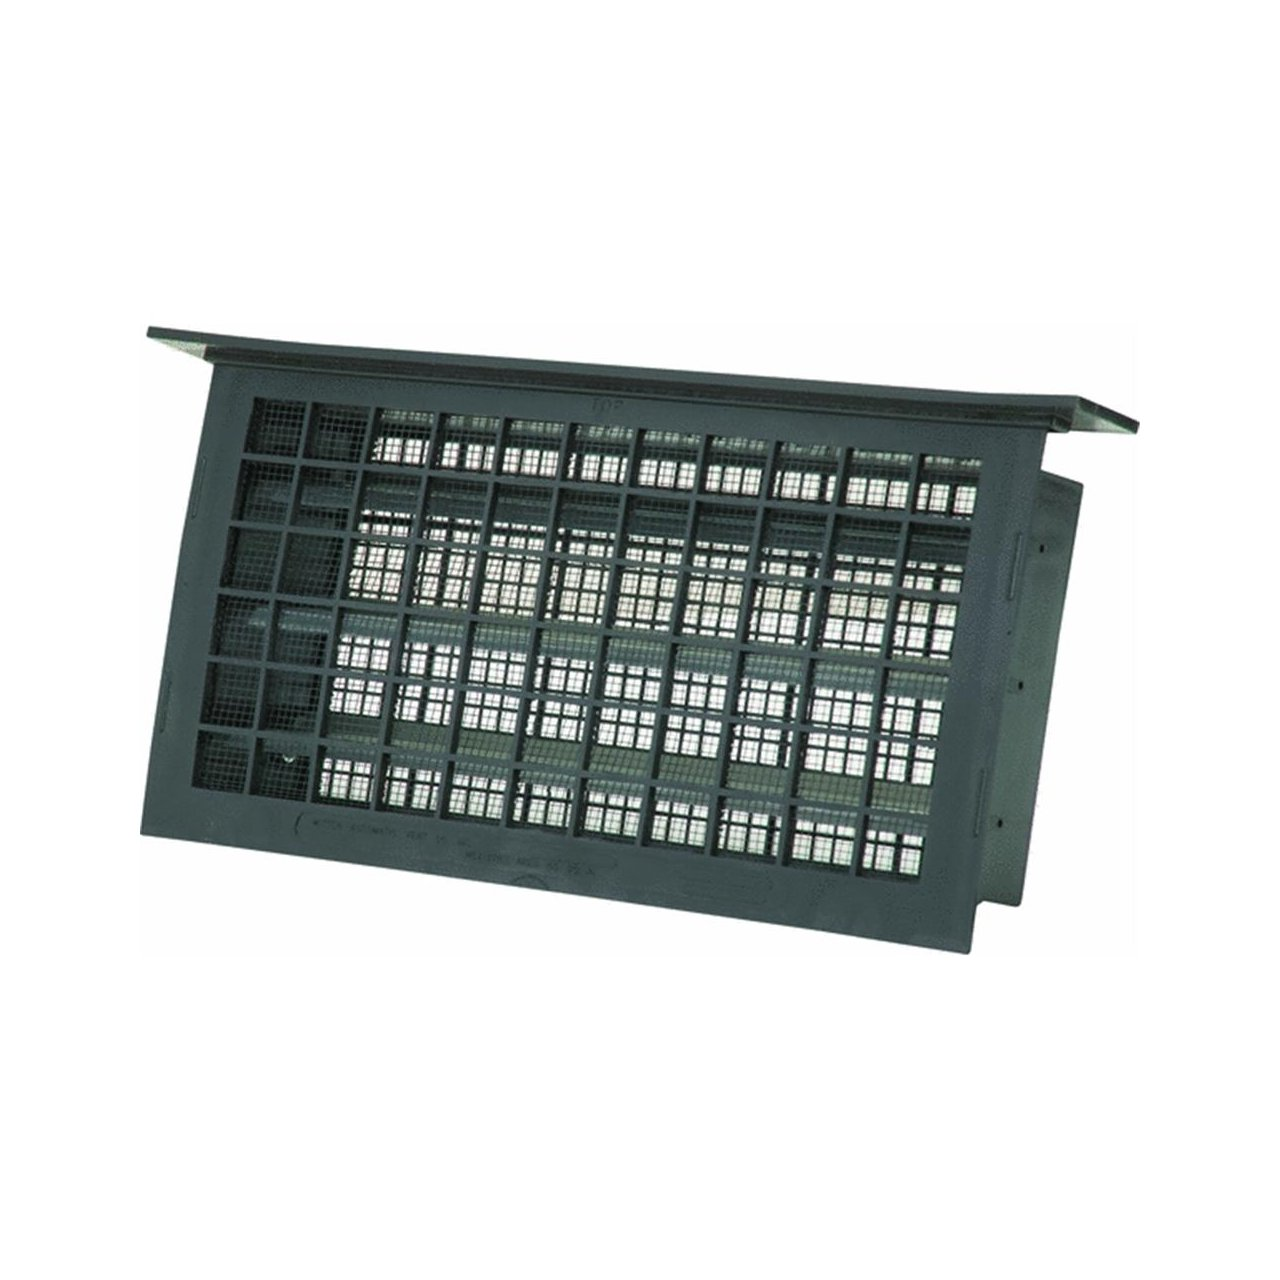 Witten Automatic Vnt. 304LBL Automatic Foundation Ventilator [Misc.] A-ELBLACK 105120